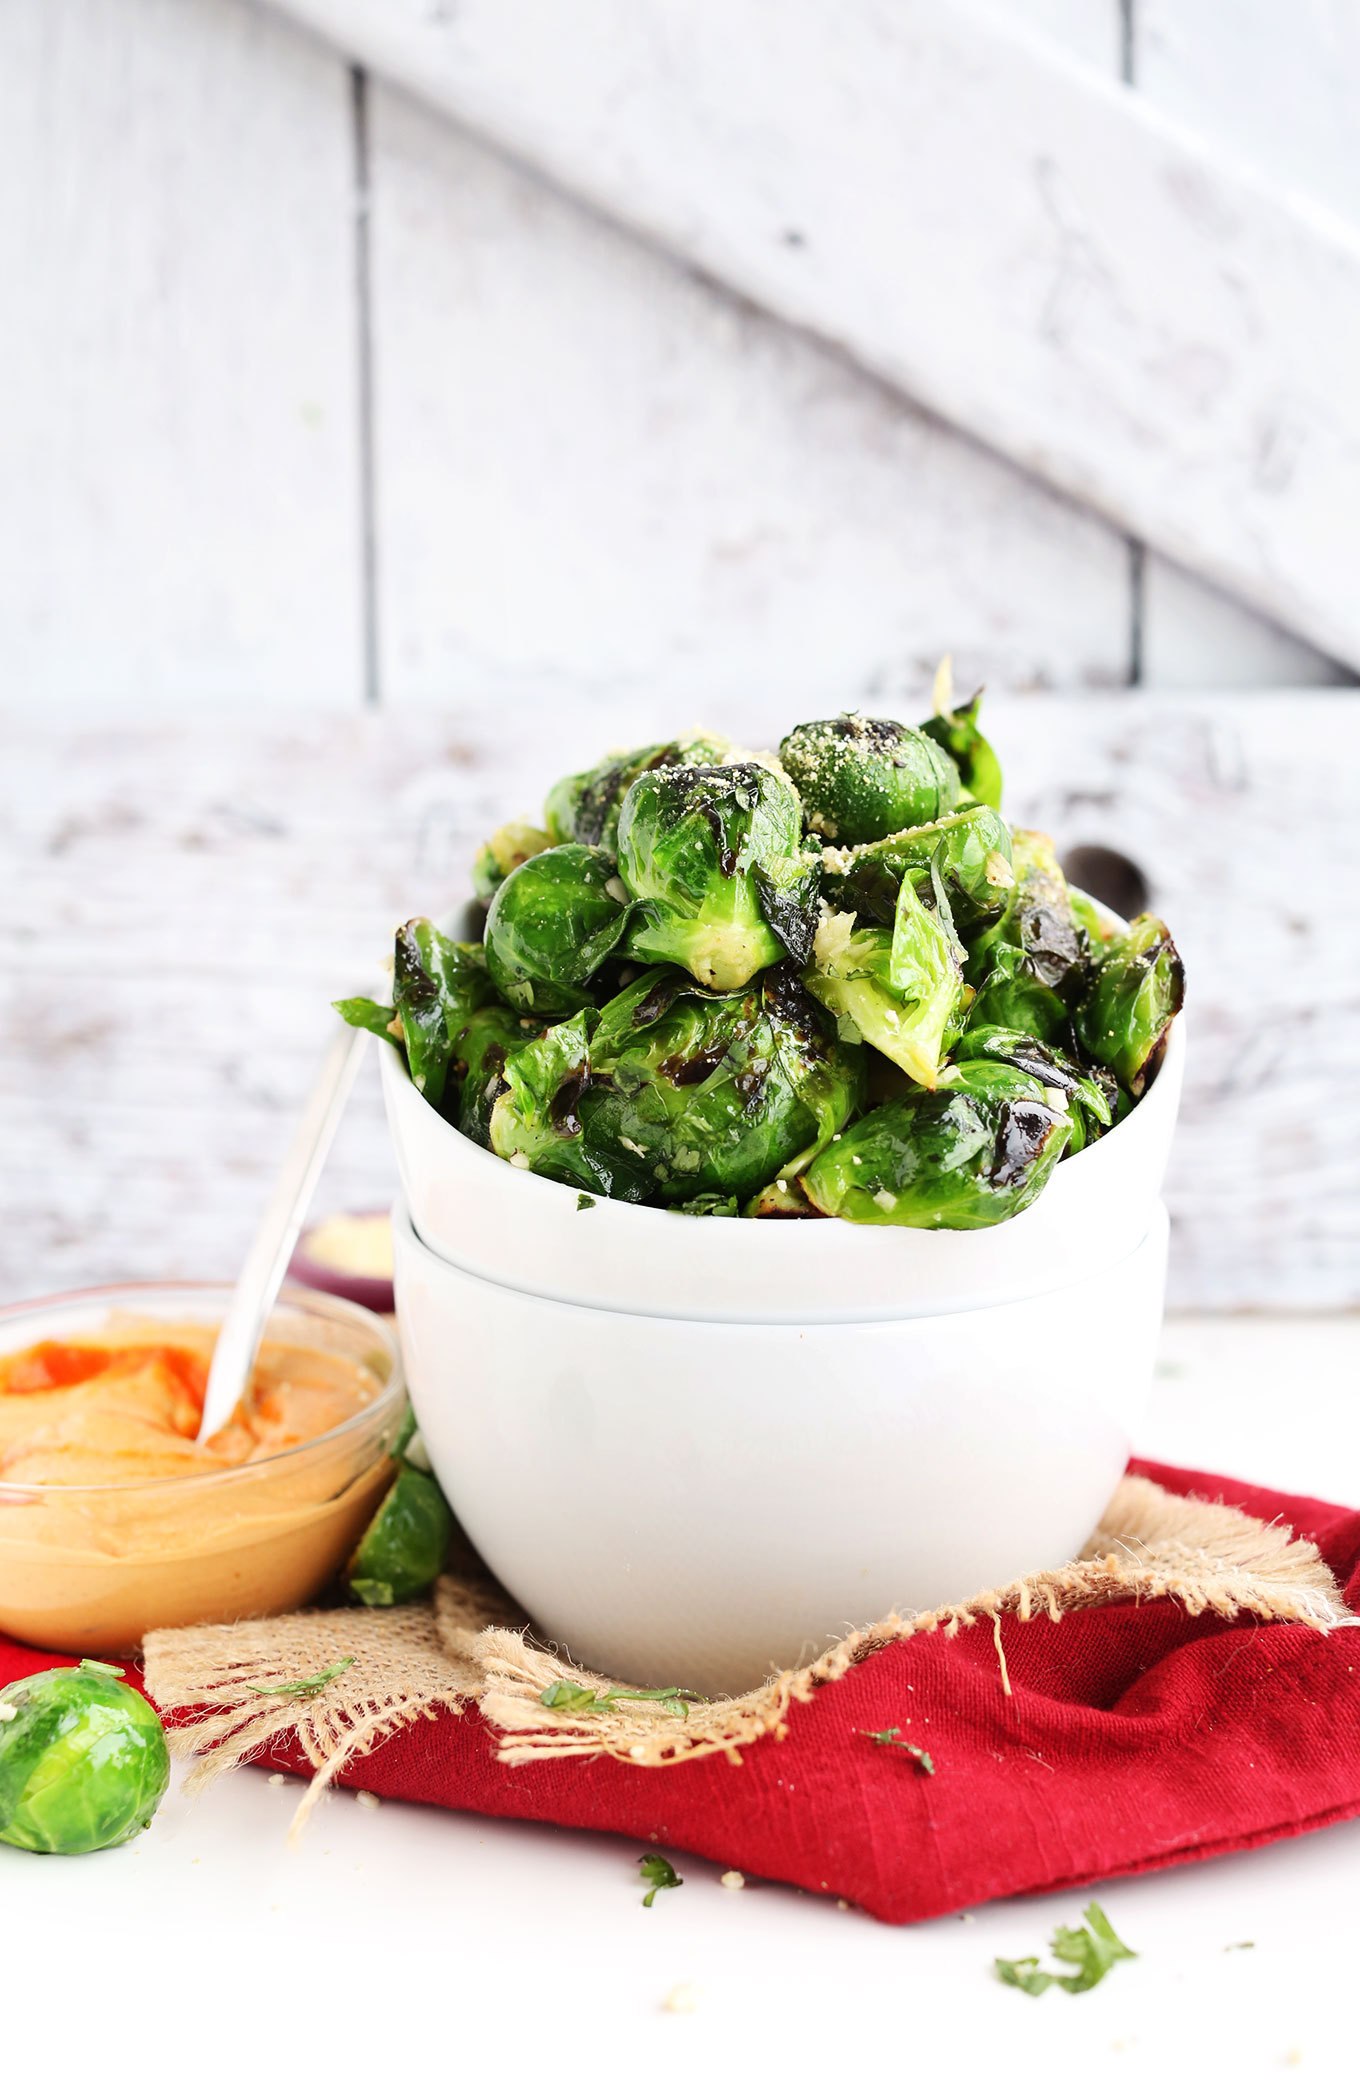 Bowl of Crispy Roasted Brussel Sprouts with a smaller bowl of spicy Sriracha Aioli